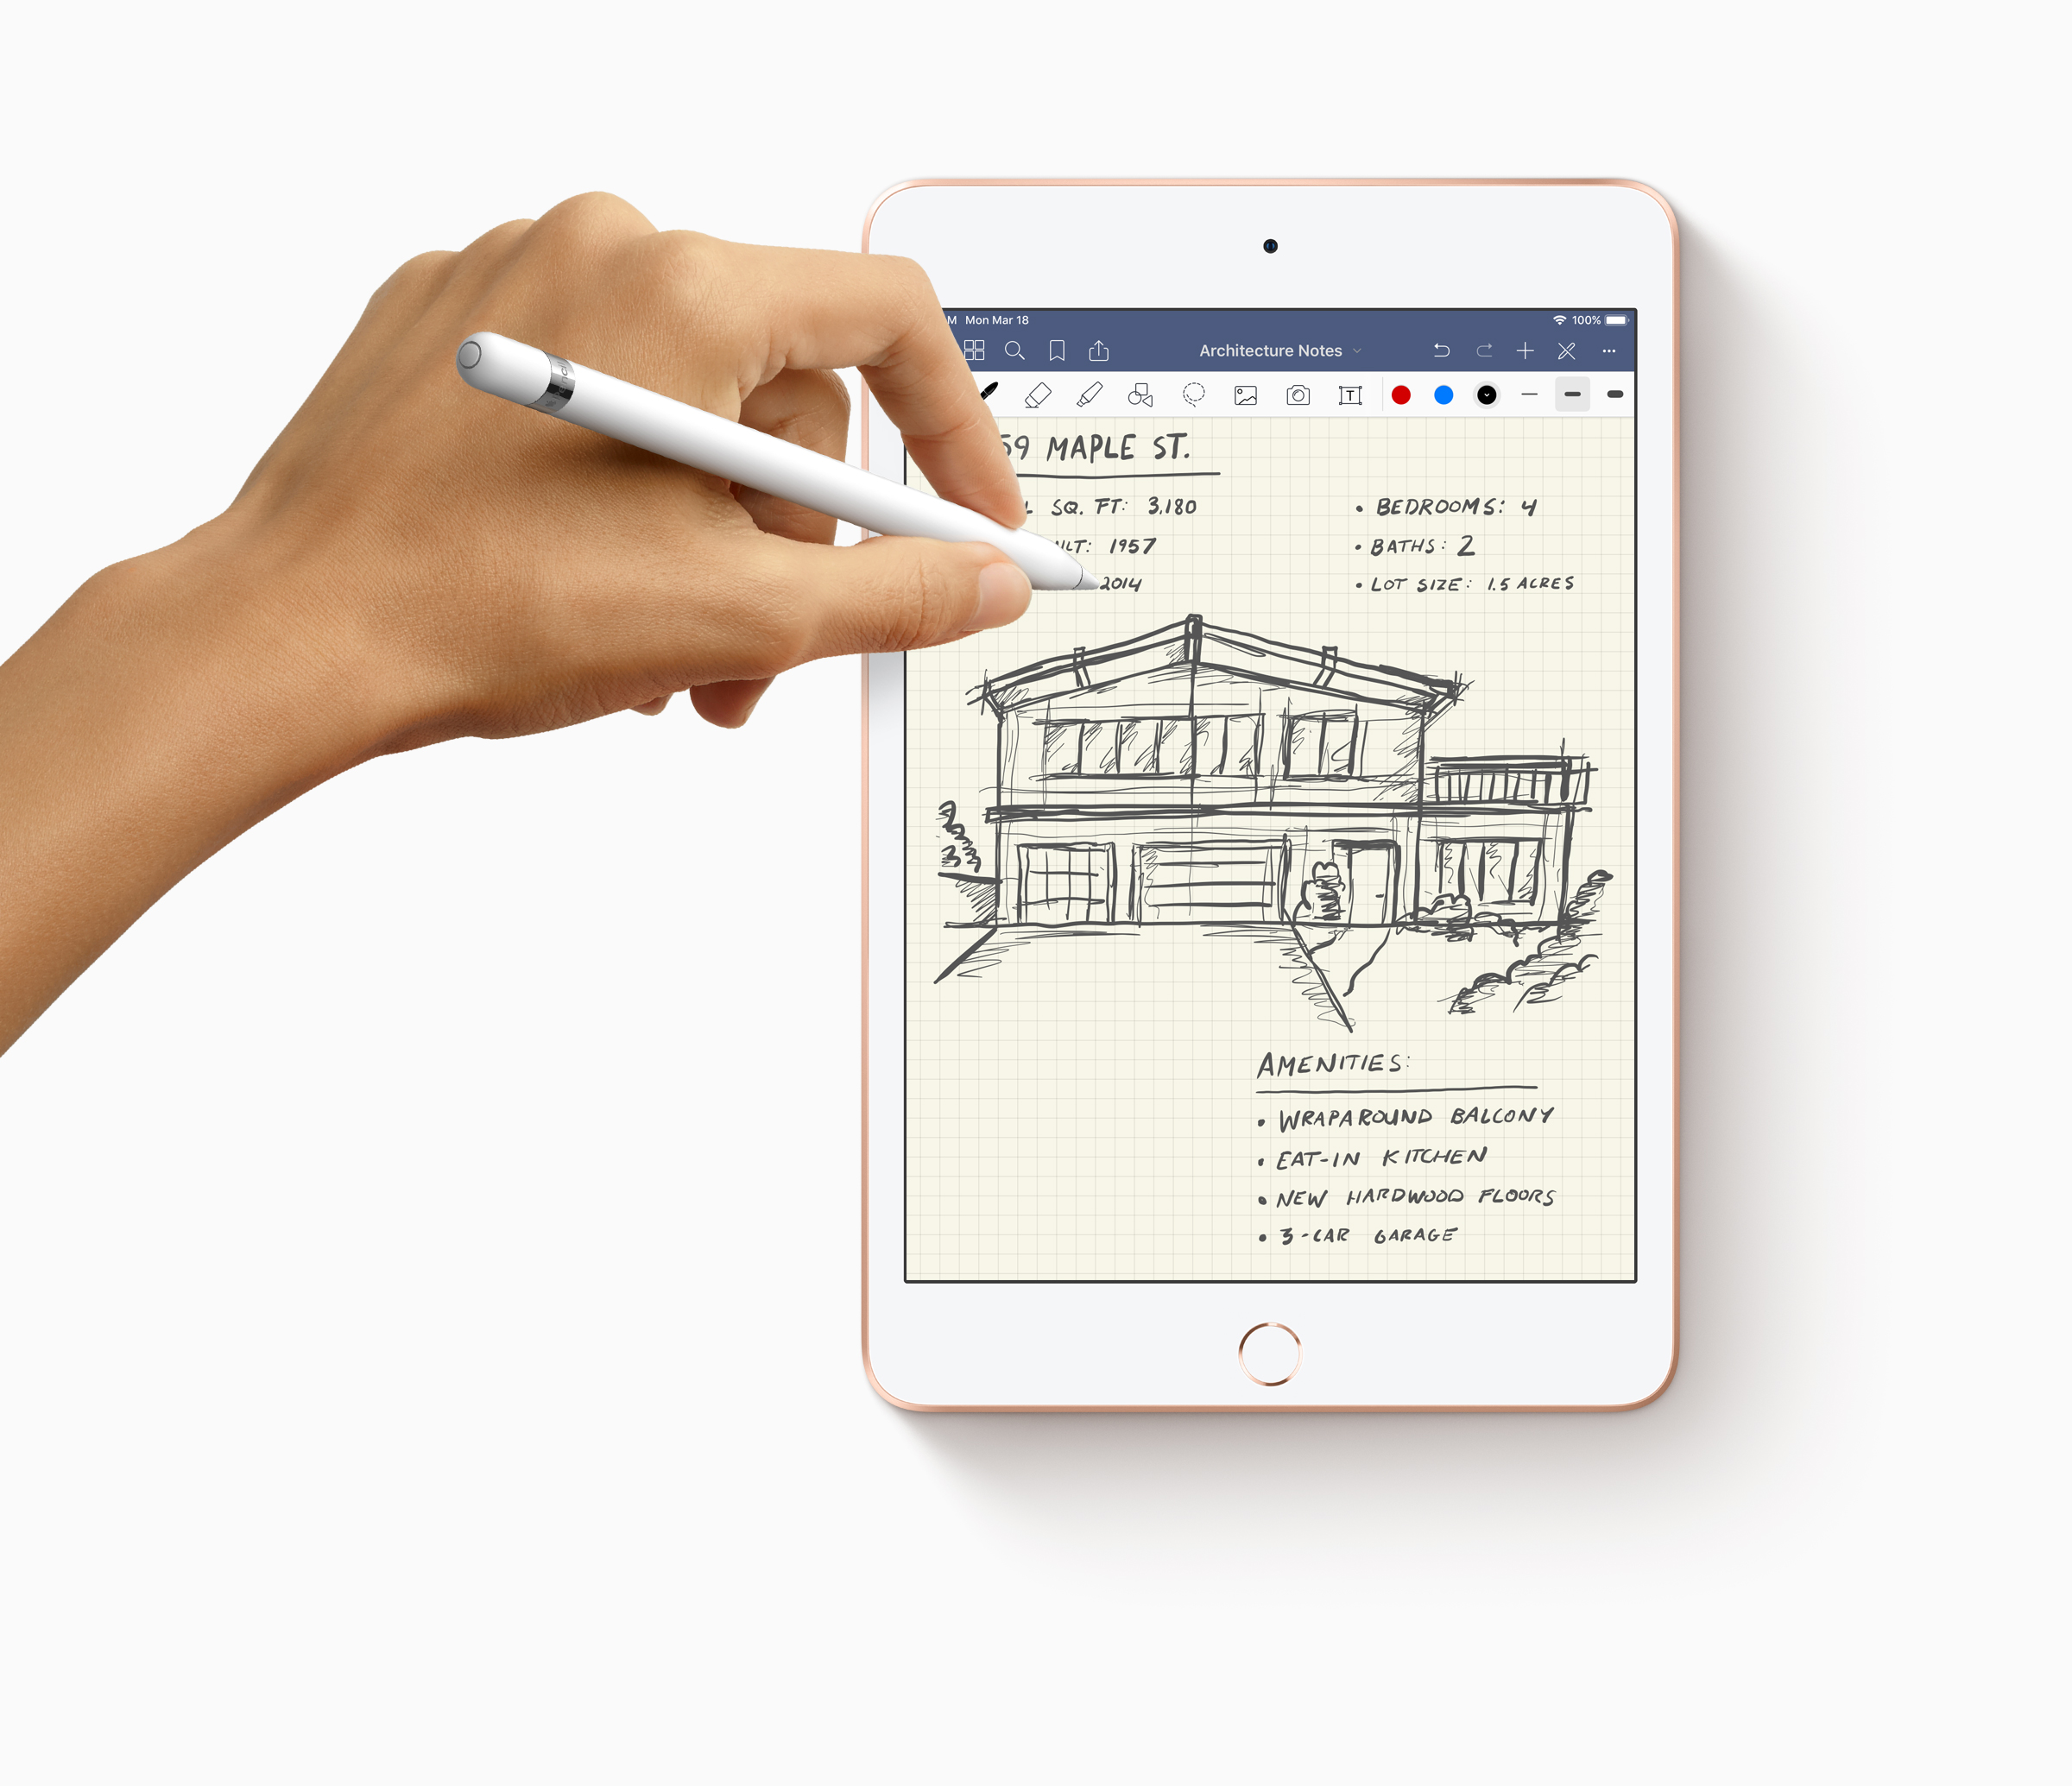 New IPad Mini Apple Pencil With Hands Drawing 03162019